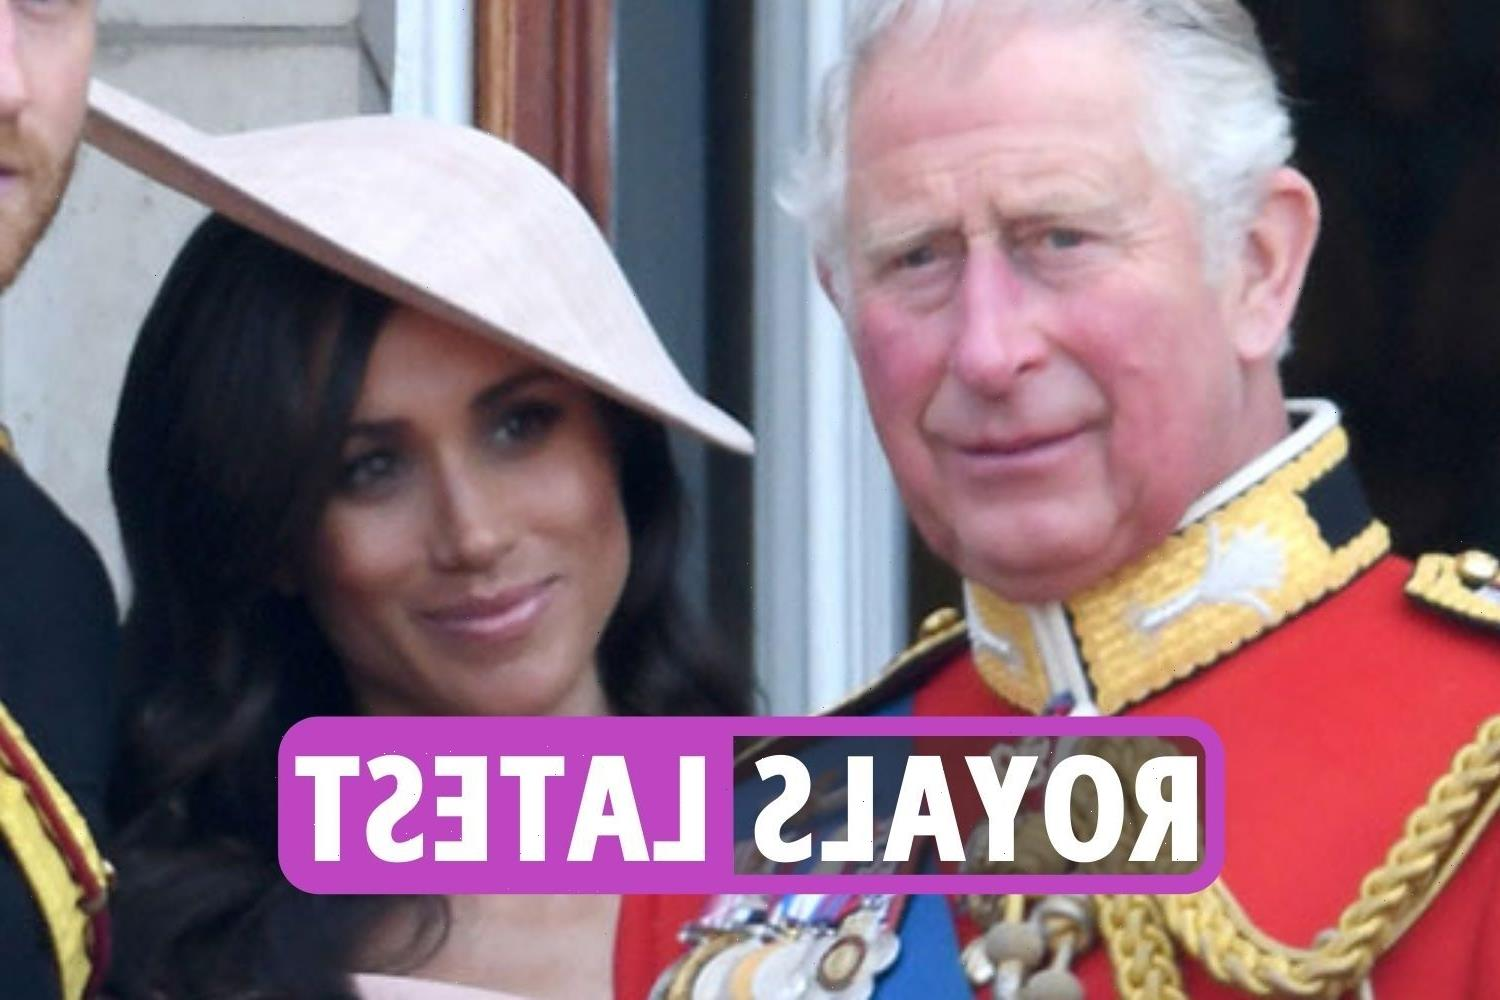 Royal Family news – Prince Charles IGNORING brutal Meghan Markle and Prince Harry feud 'until raw emotions settle down'